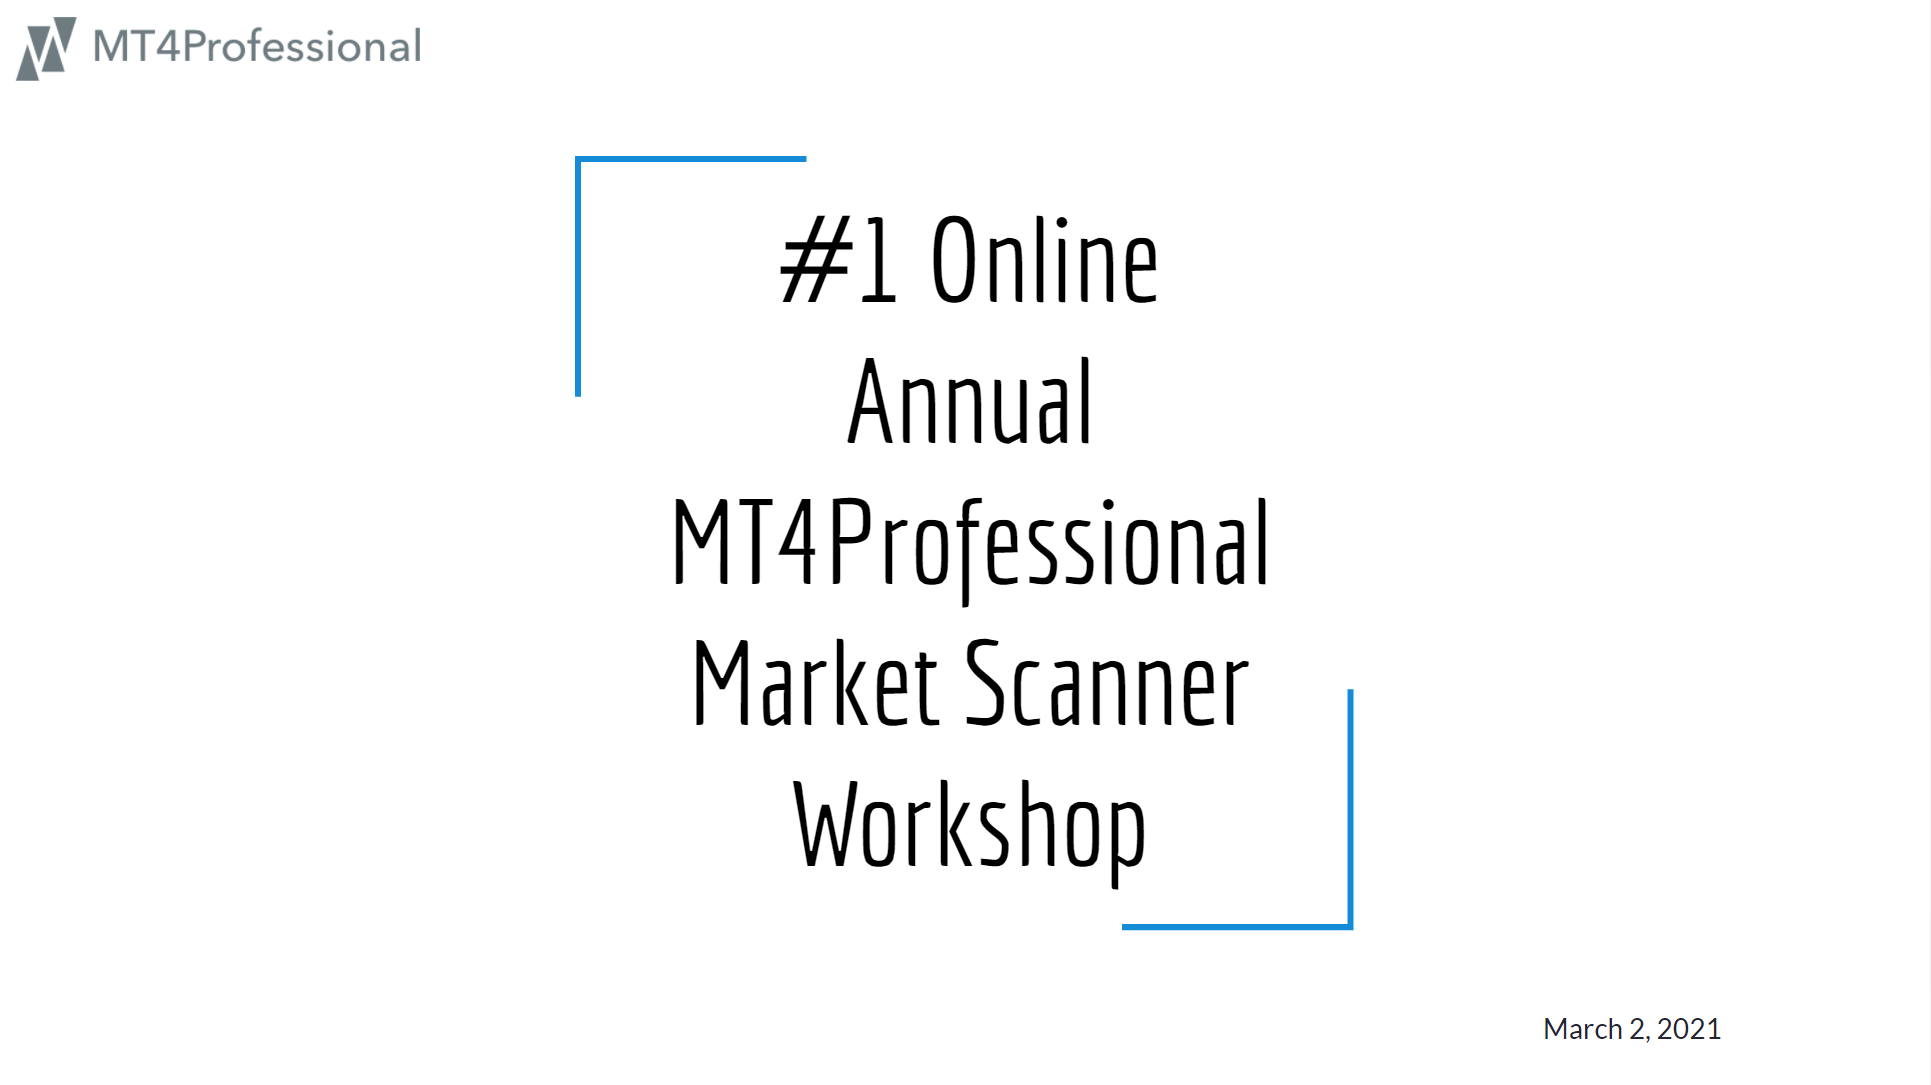 #1 Online Annual MT4Professional Market Scanner Workshop - One week after